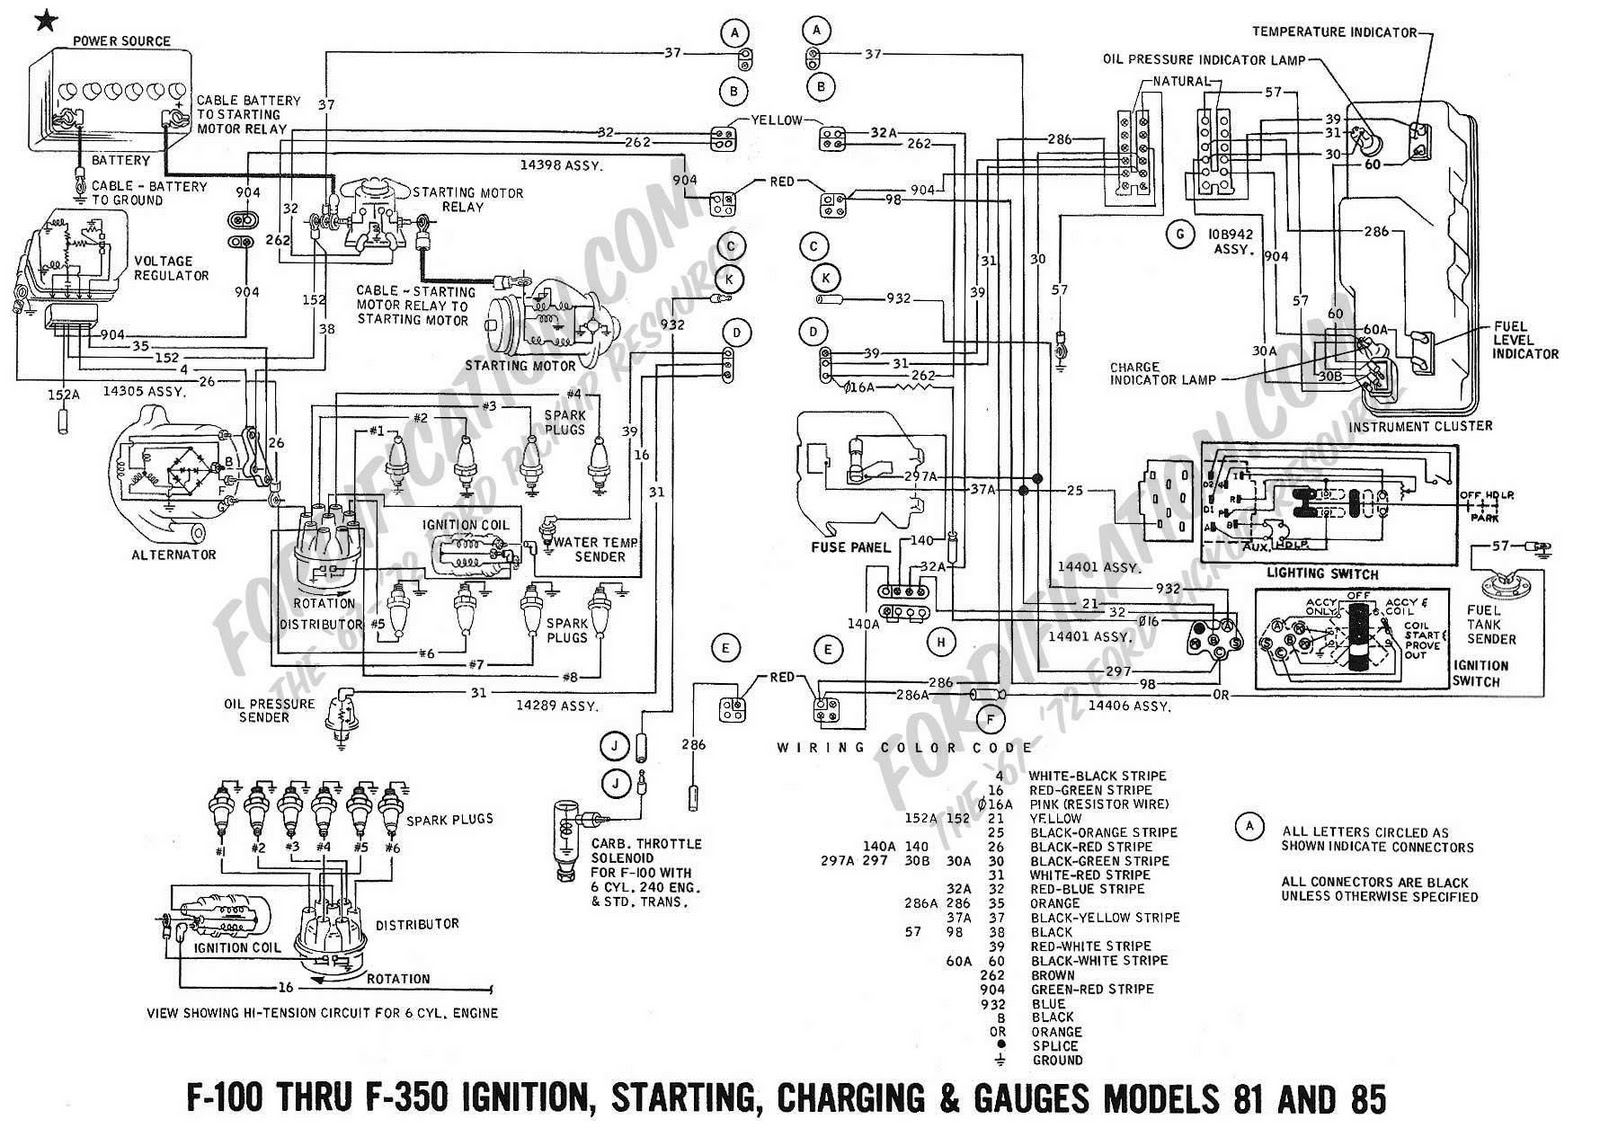 1971 Ford F 250 Fuse Box Circuit Diagram Schema Chevy Equinox Layout 1968 F100 Wiring Color Diagrams Bed Liner